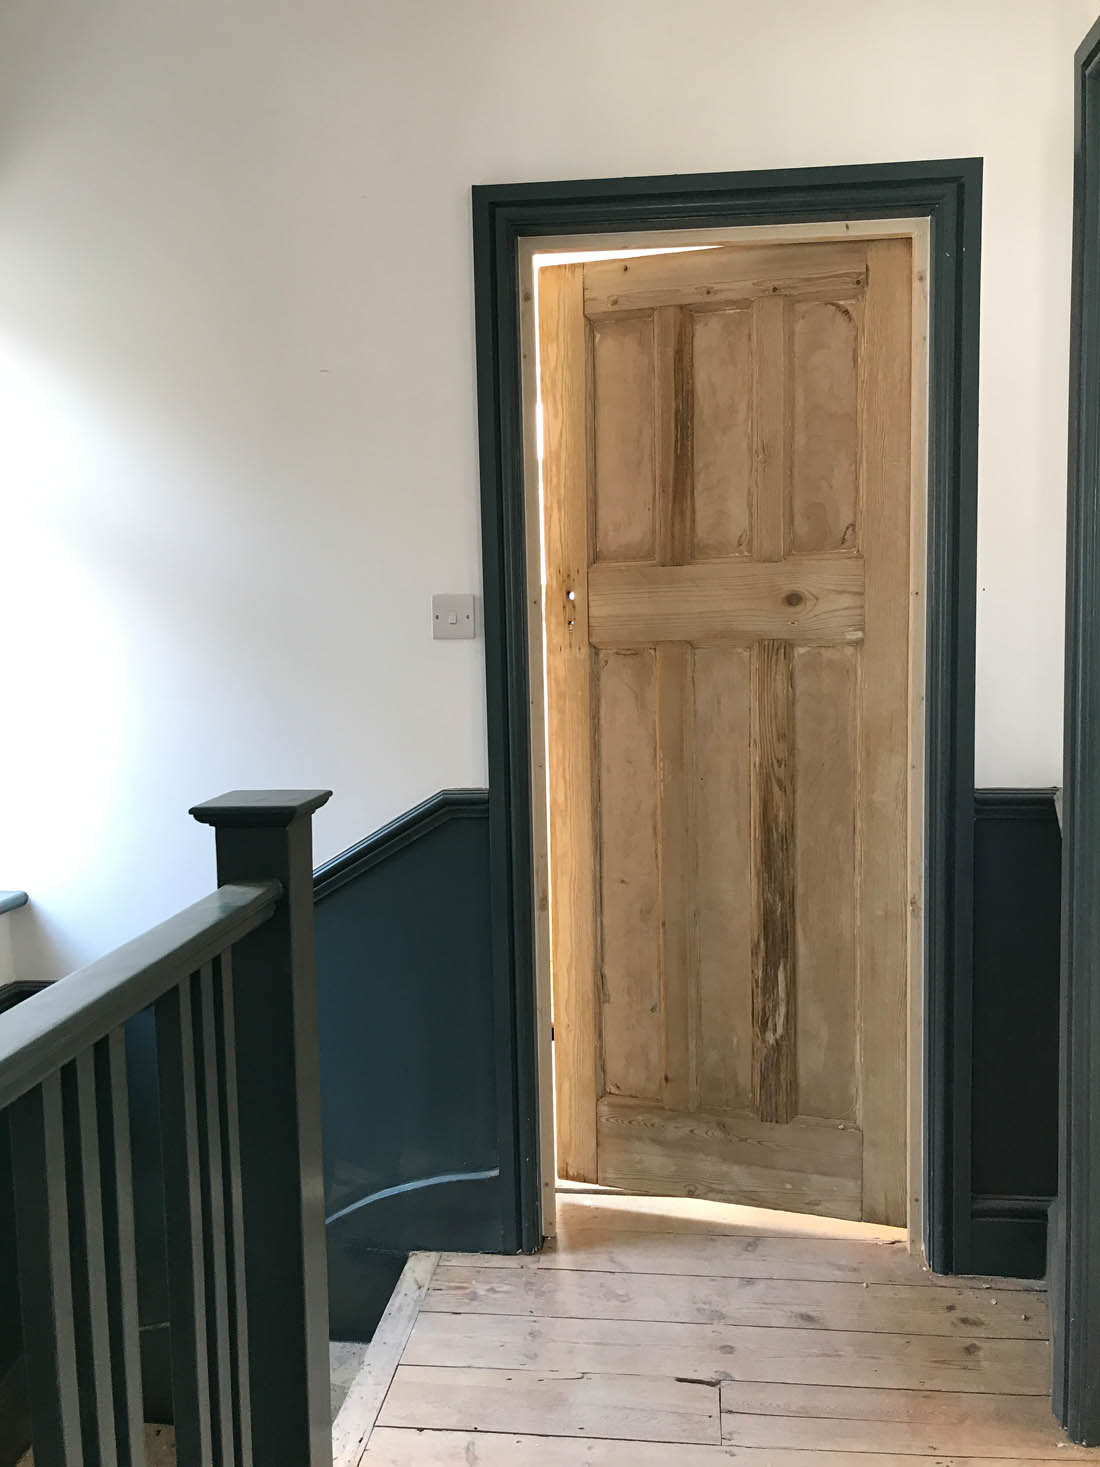 Adding character back to a period home